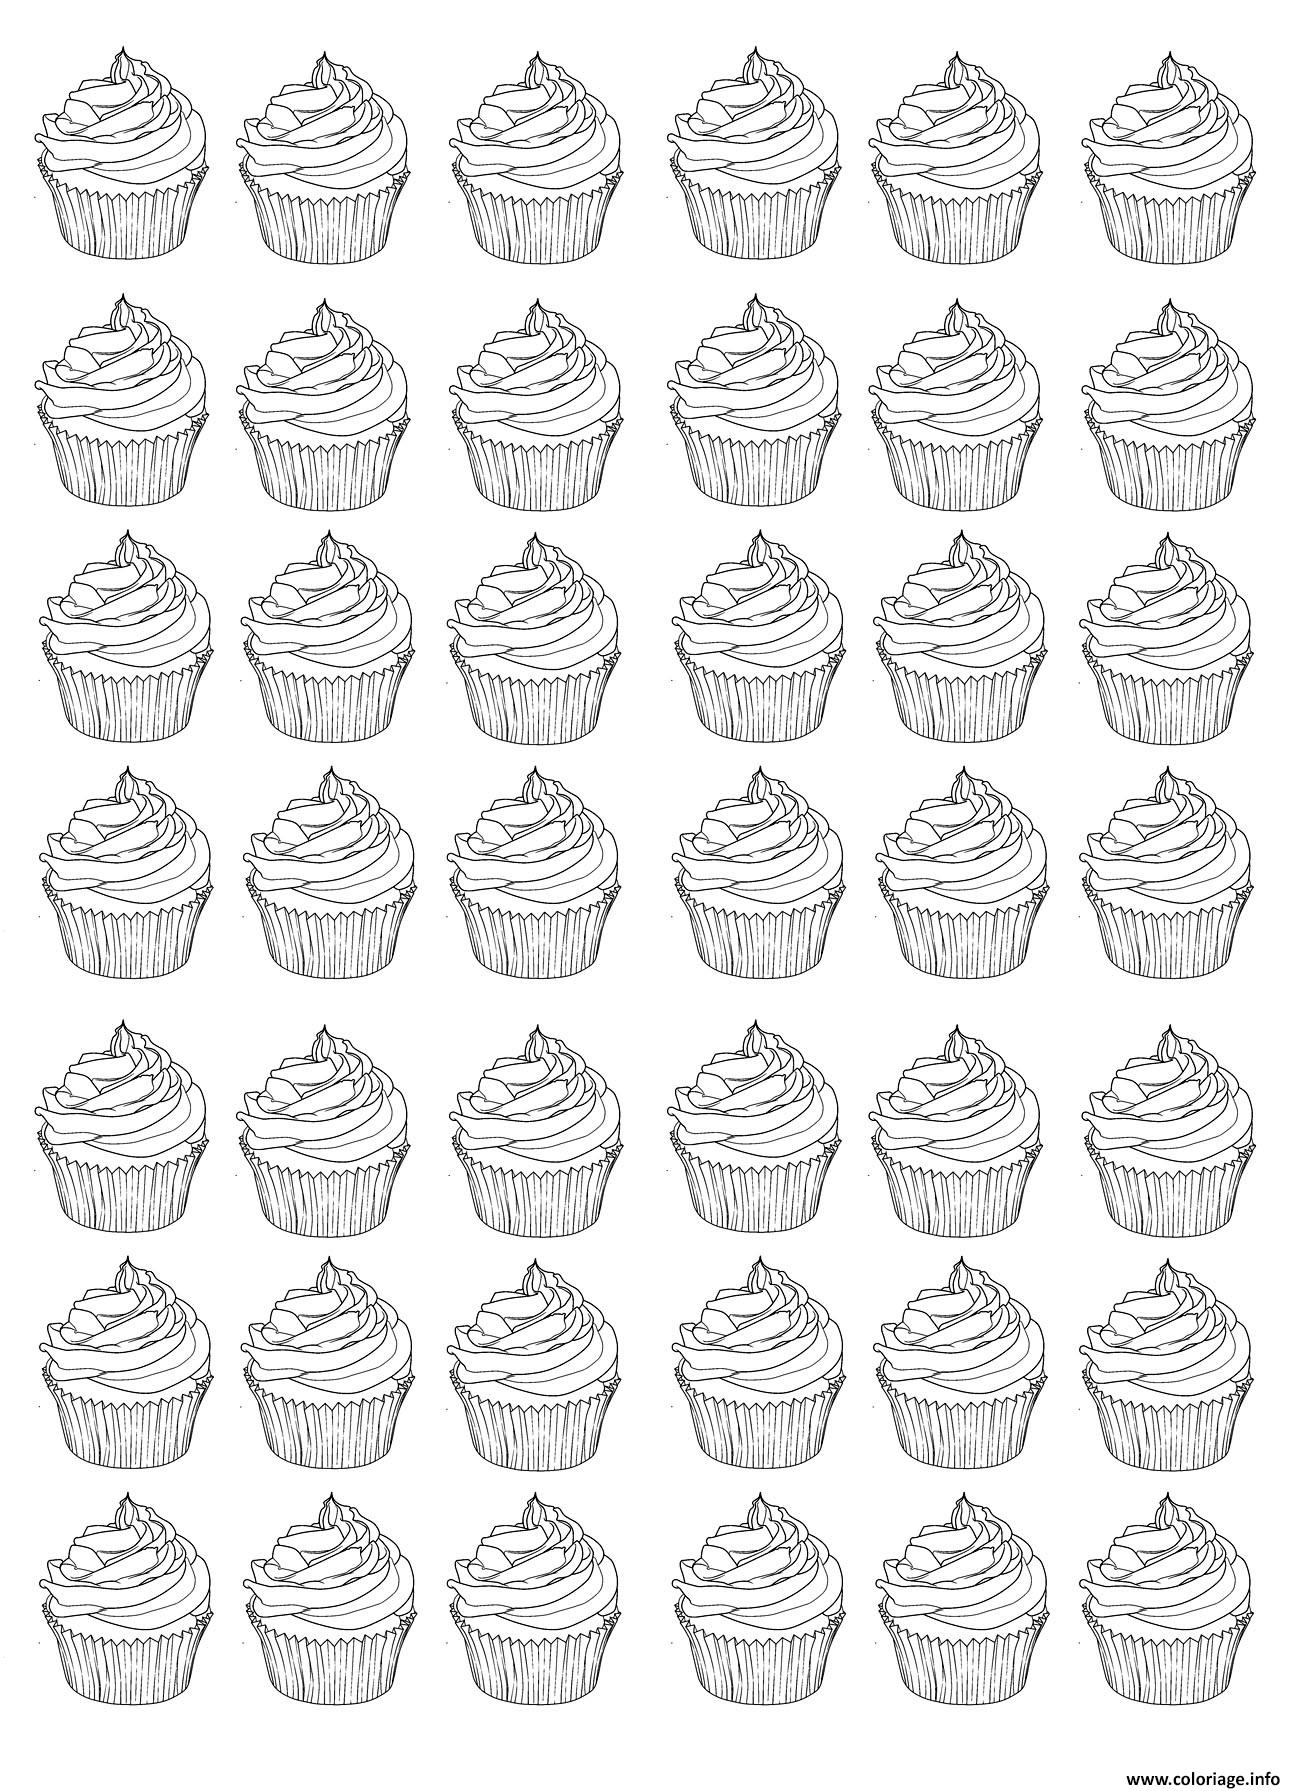 coloriage cupcakes adulte warhol difficile. Black Bedroom Furniture Sets. Home Design Ideas